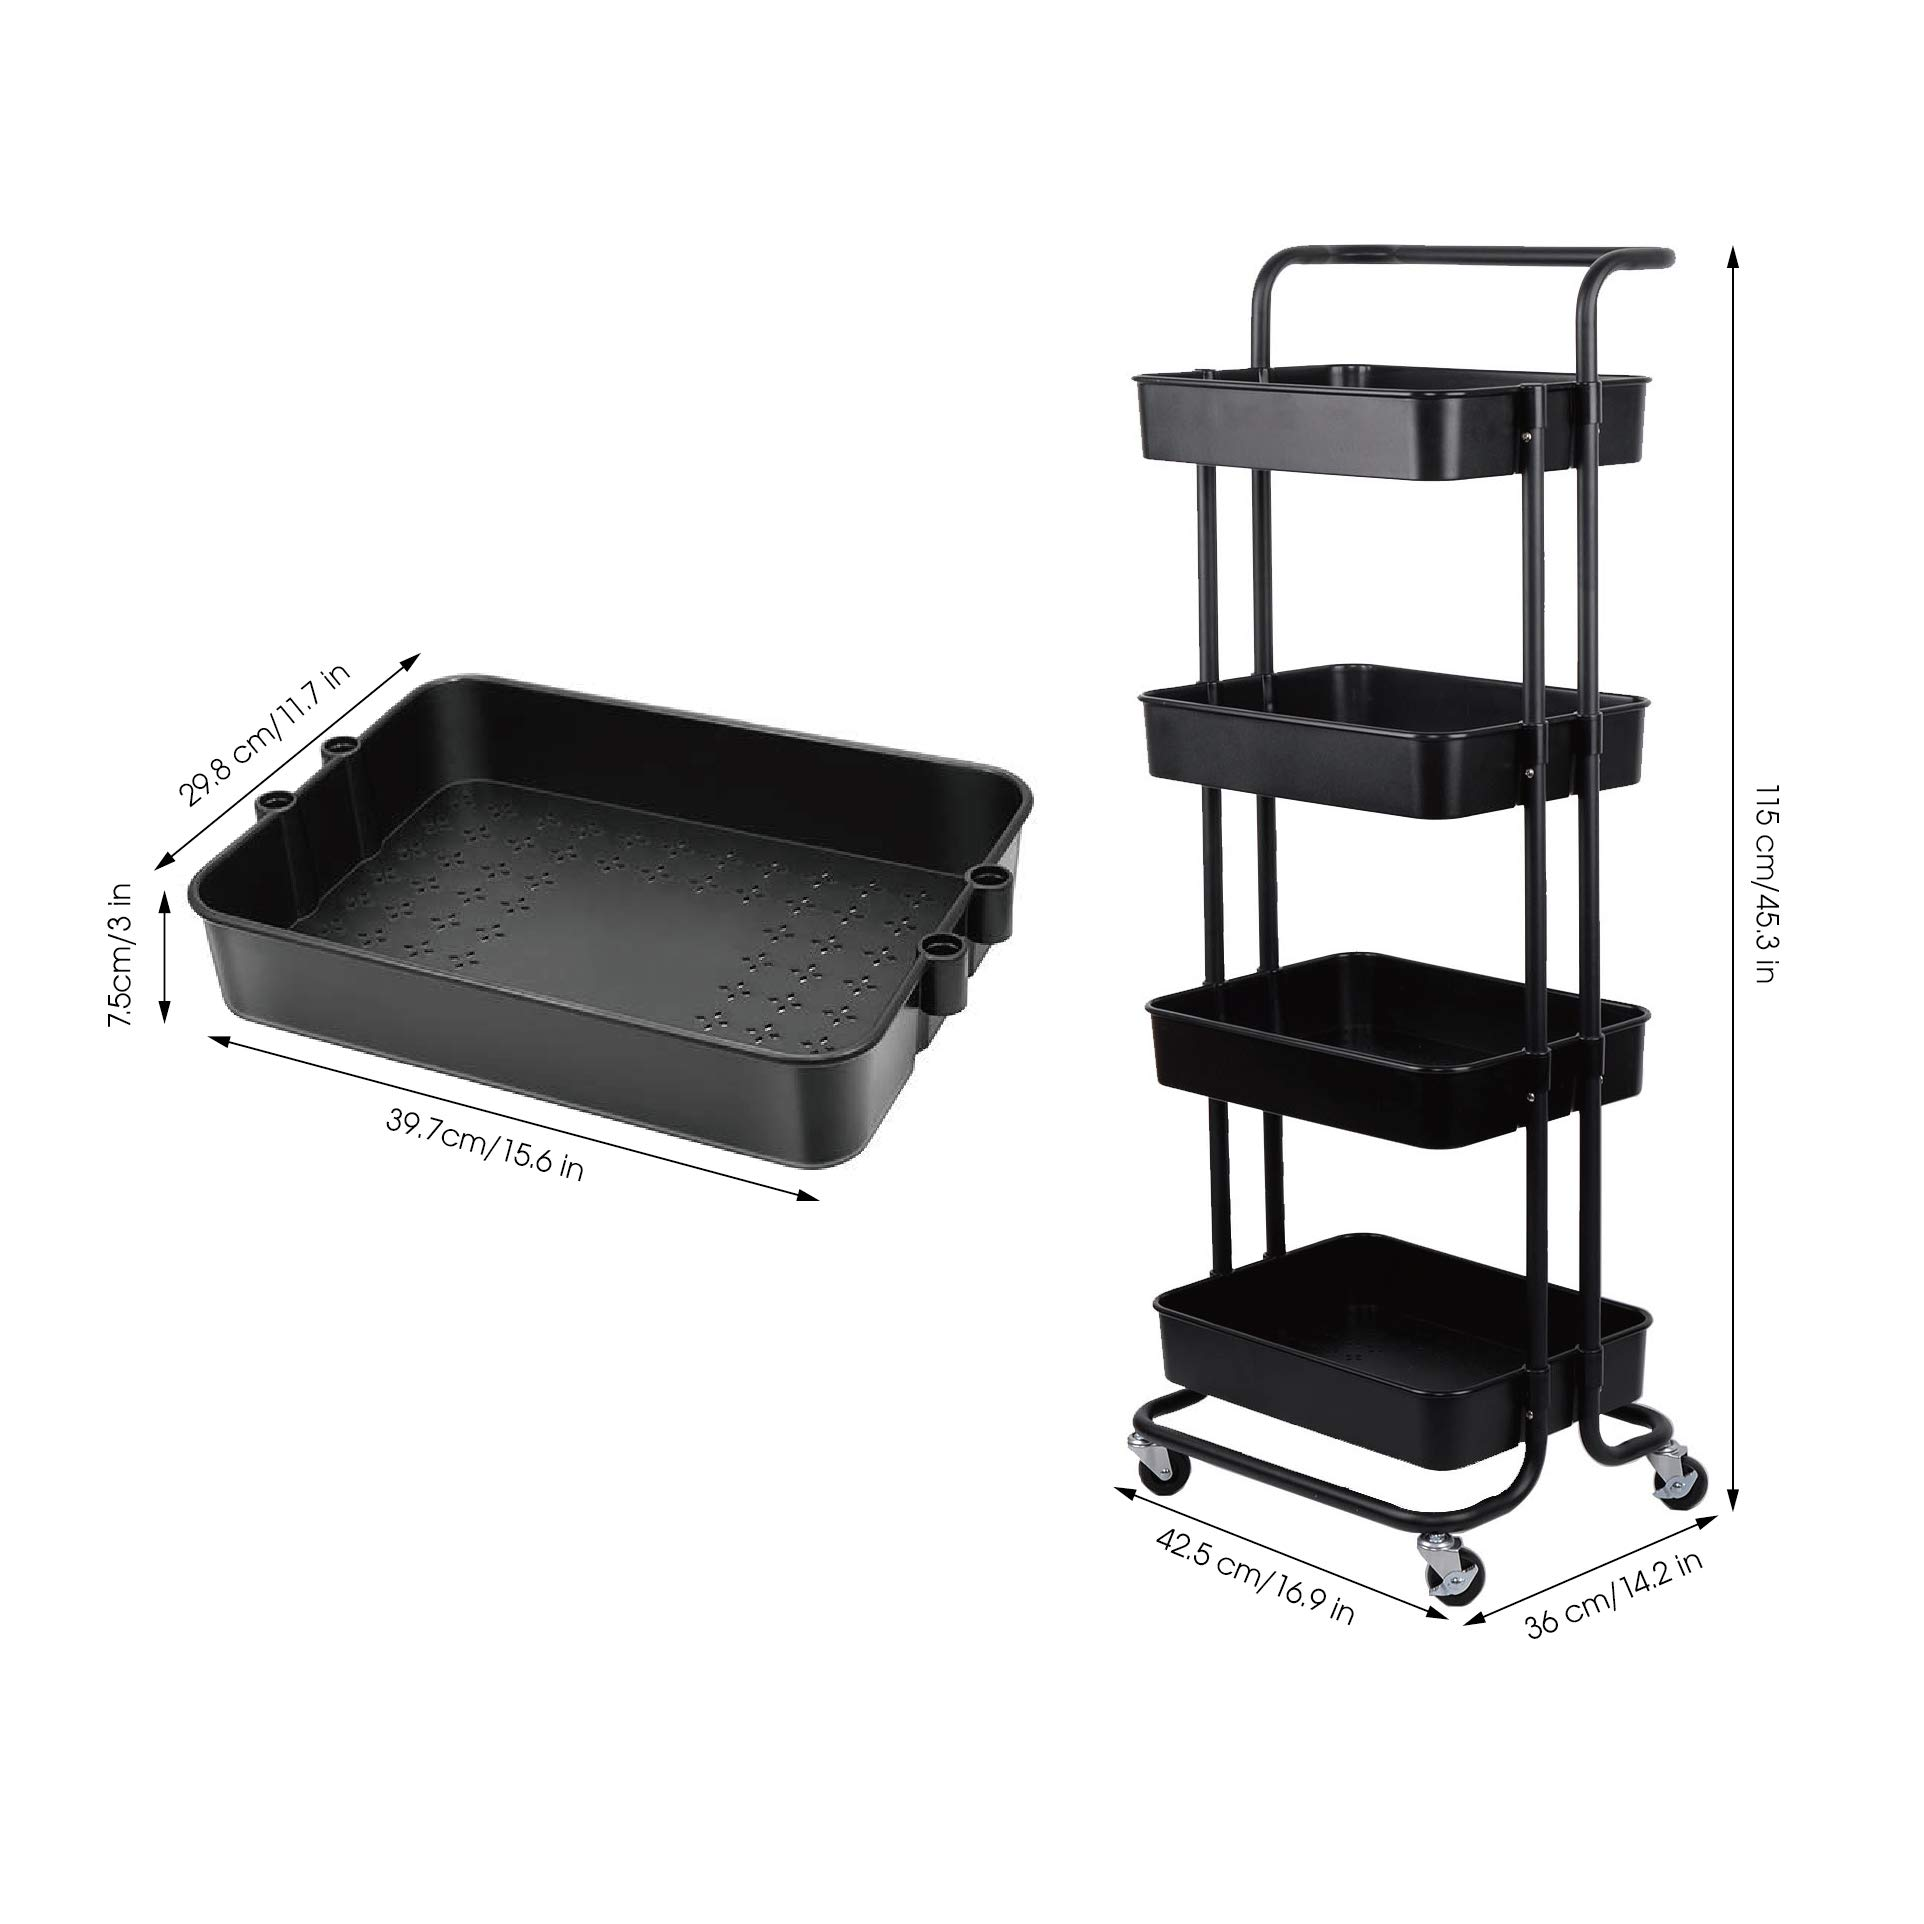 DTK 4 Tier Utility Rolling Cart with Wheels, Storage Kitchen Organizer Craft Cart with Shelves, Trolley Mobile Cart for Office, Kitchen, Bathroom (Black) Frank